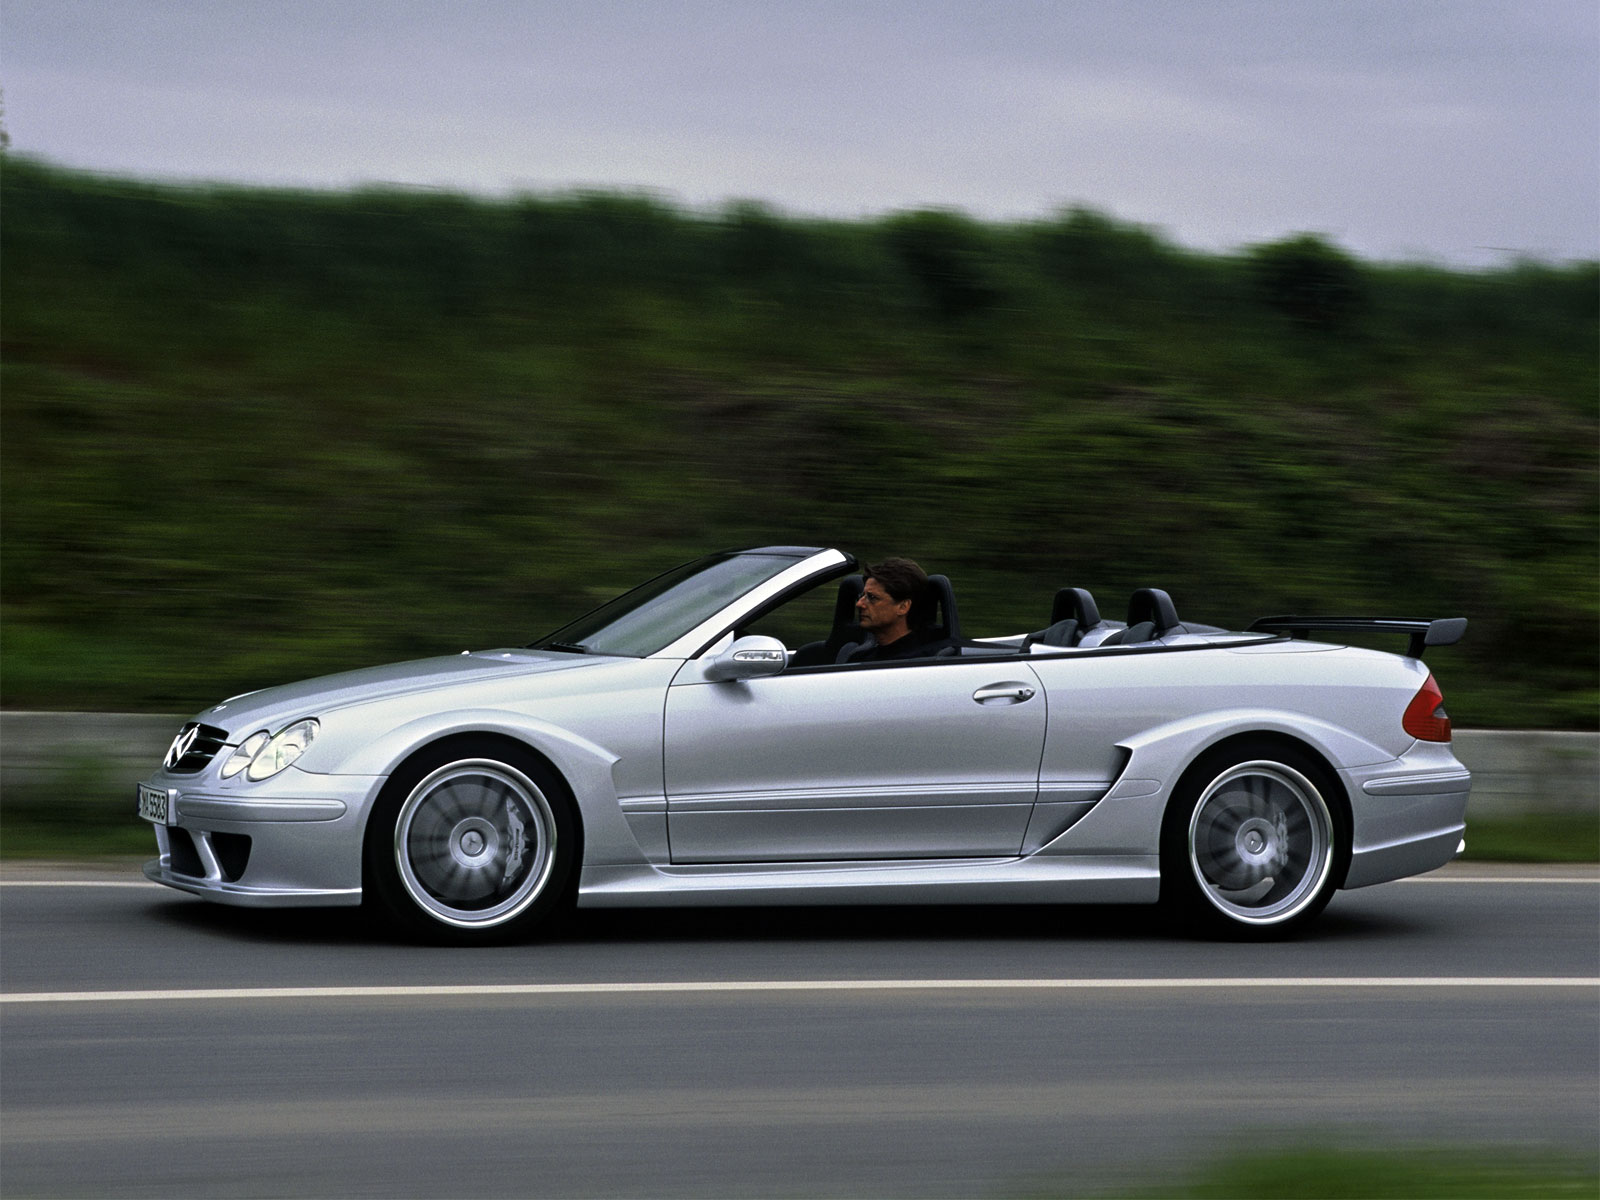 Mercedes benz clk dtm amg cabriolet for Mercedes benz clk 500